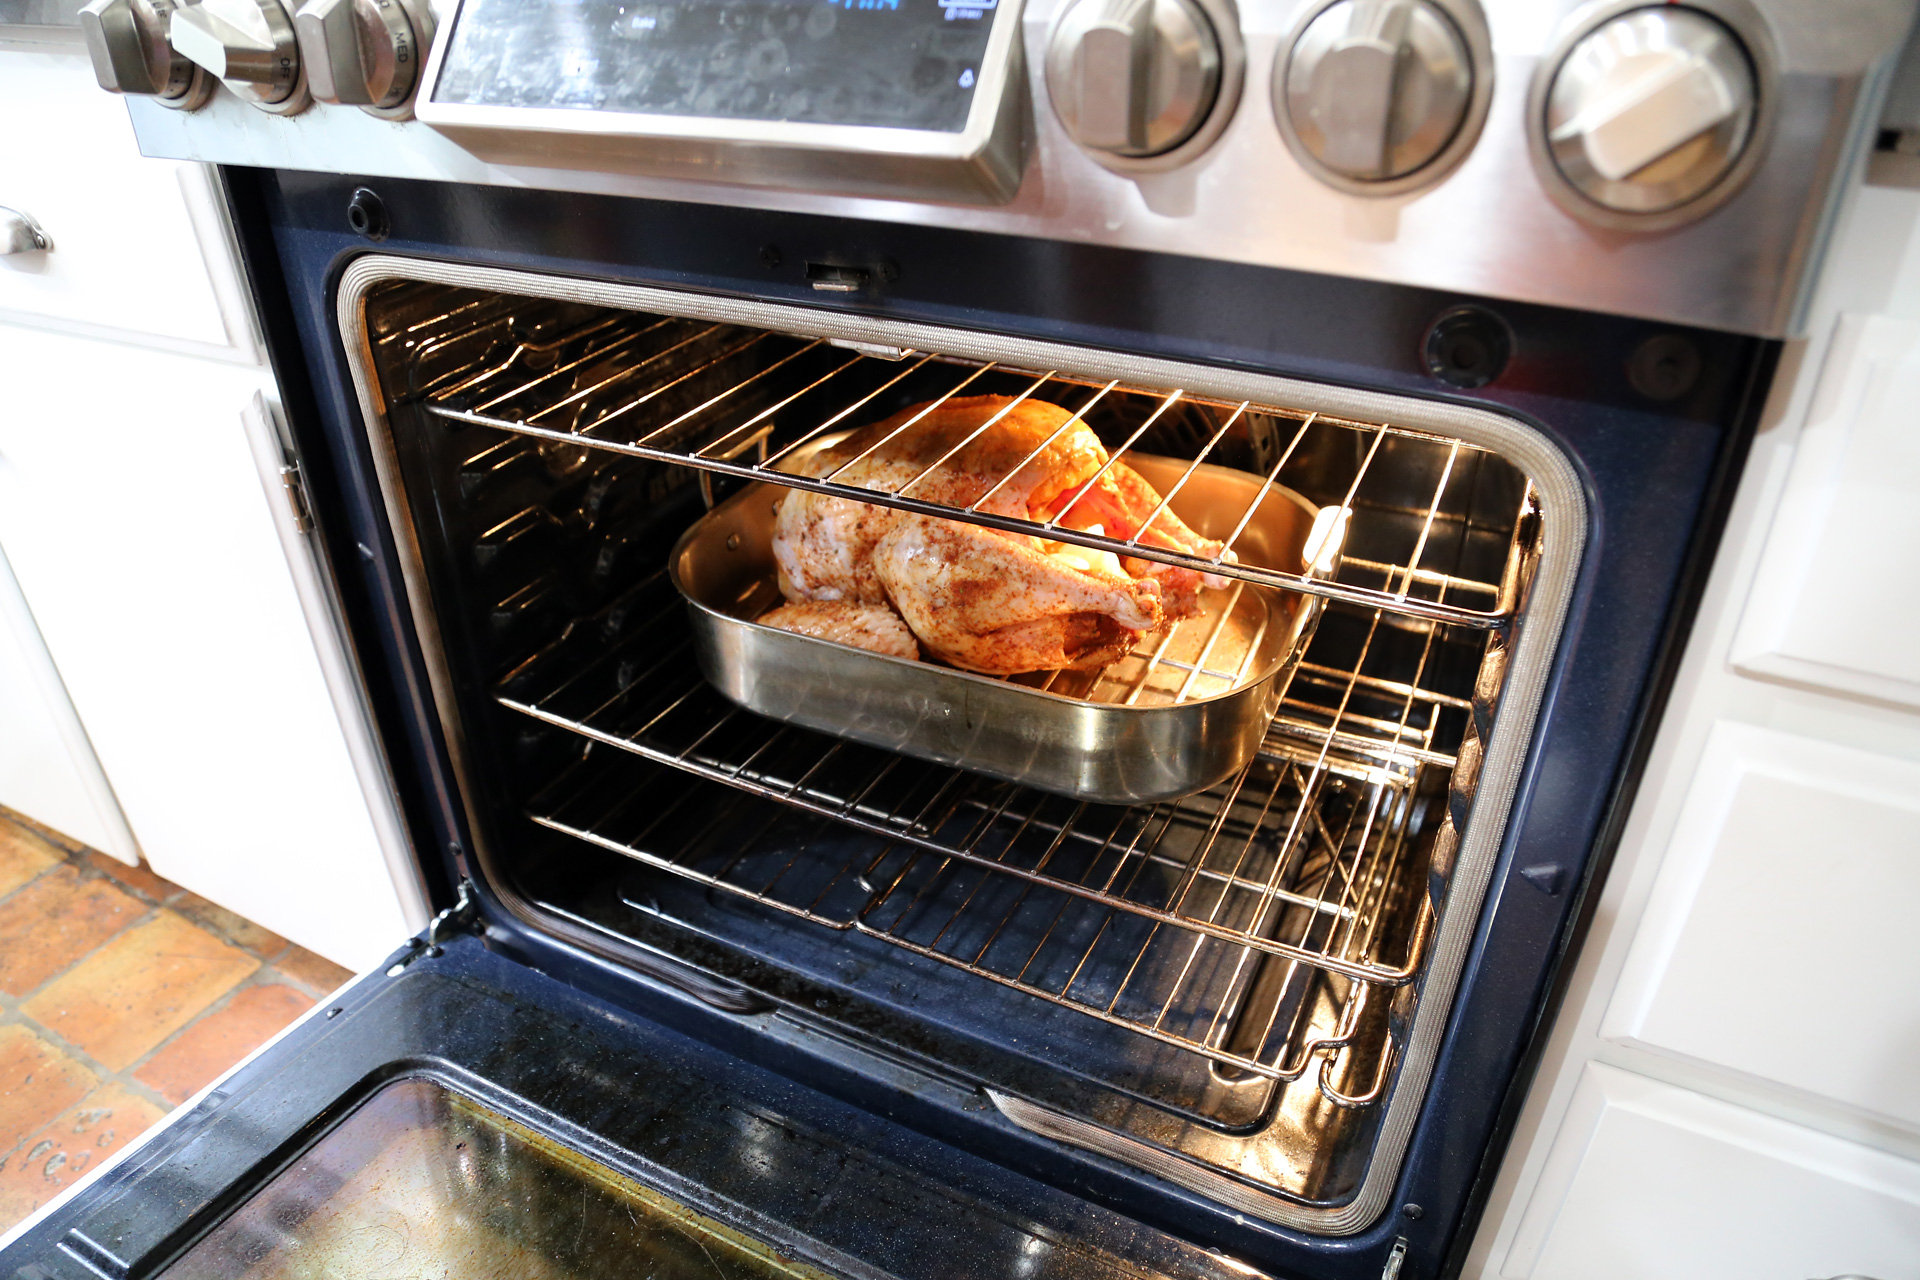 Roast the turkey in the oven per instructions.